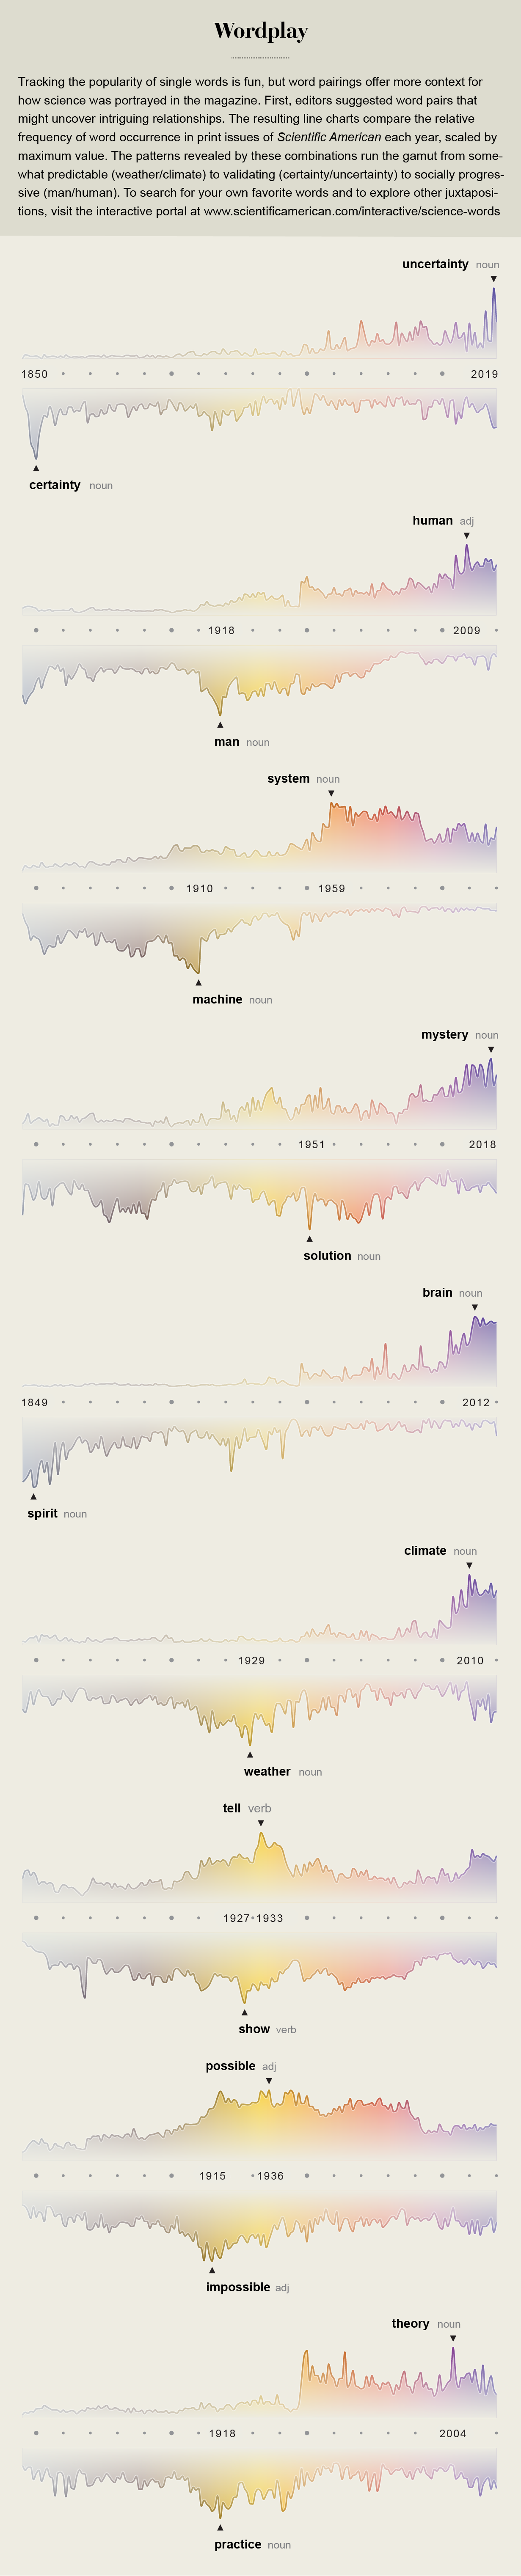 The relative frequency of revealing and interesting terms in Scientific American, from 1845 to the present.